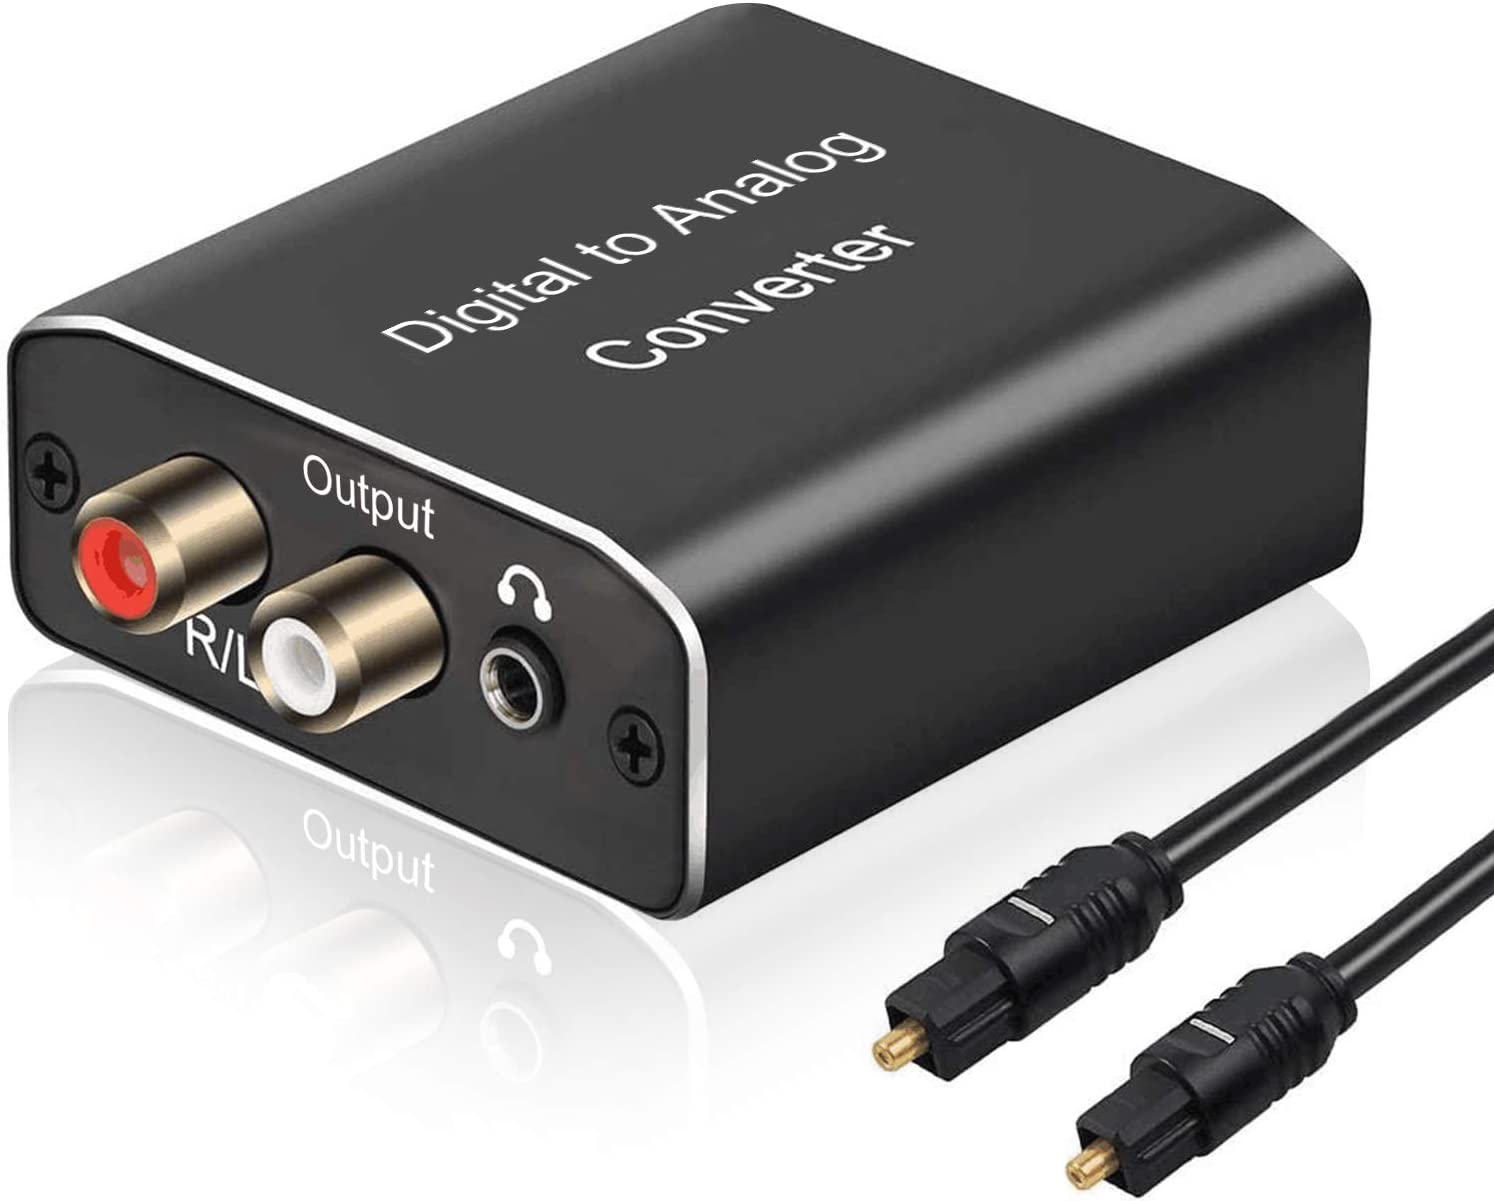 Digital to Analog Audio Converter, Hdiwousp 192 kHz DAC Digital Coaxial and Optical Toslink to Analog 3.5mm Jack and RCA (L/R) Stereo Audio Adapter with Optical Cable for HDTV Home Cinema, Aluminum